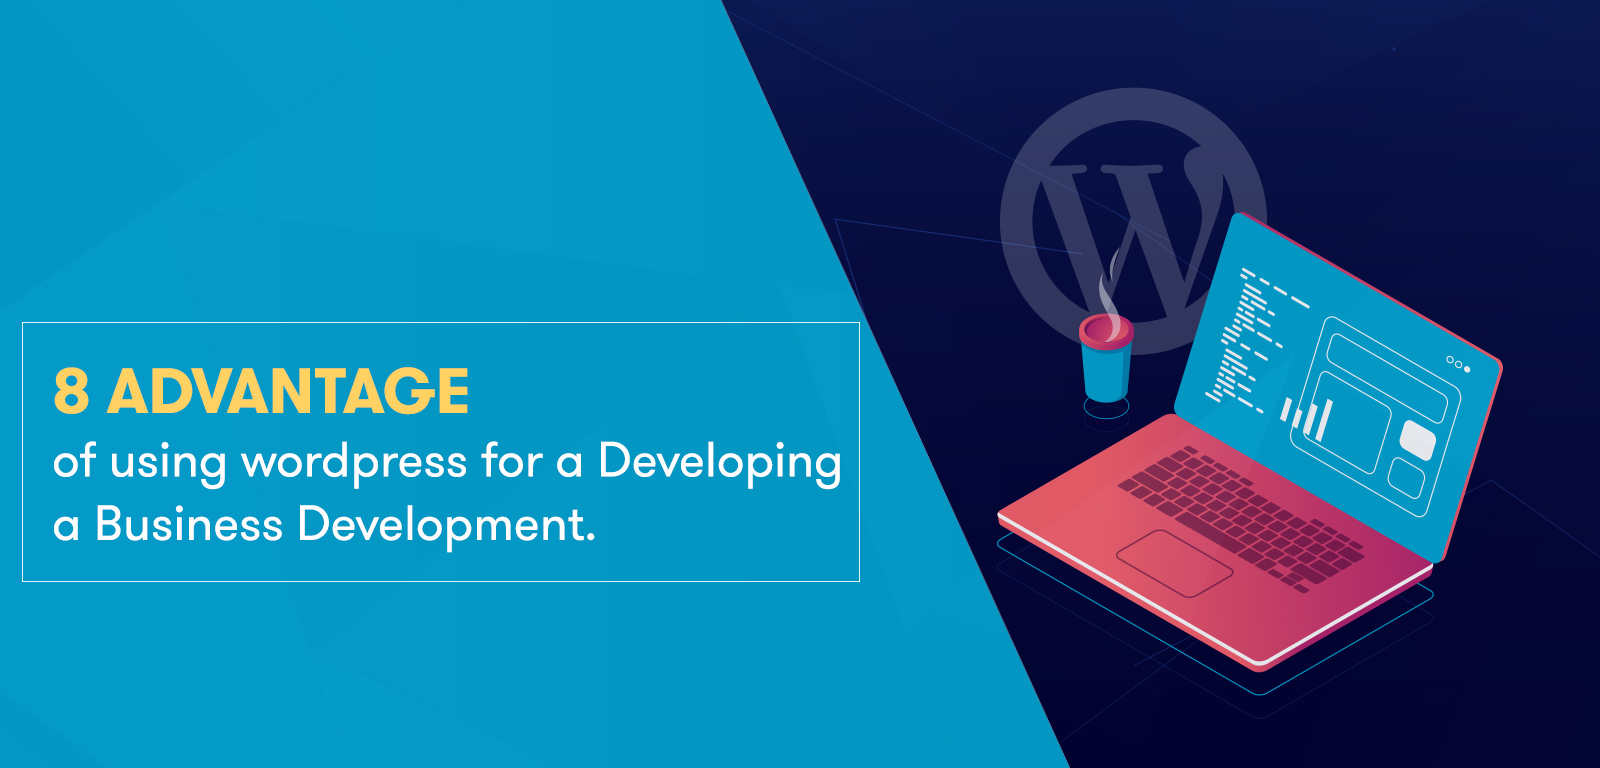 8 Advantages of using WordPress for developing a business website